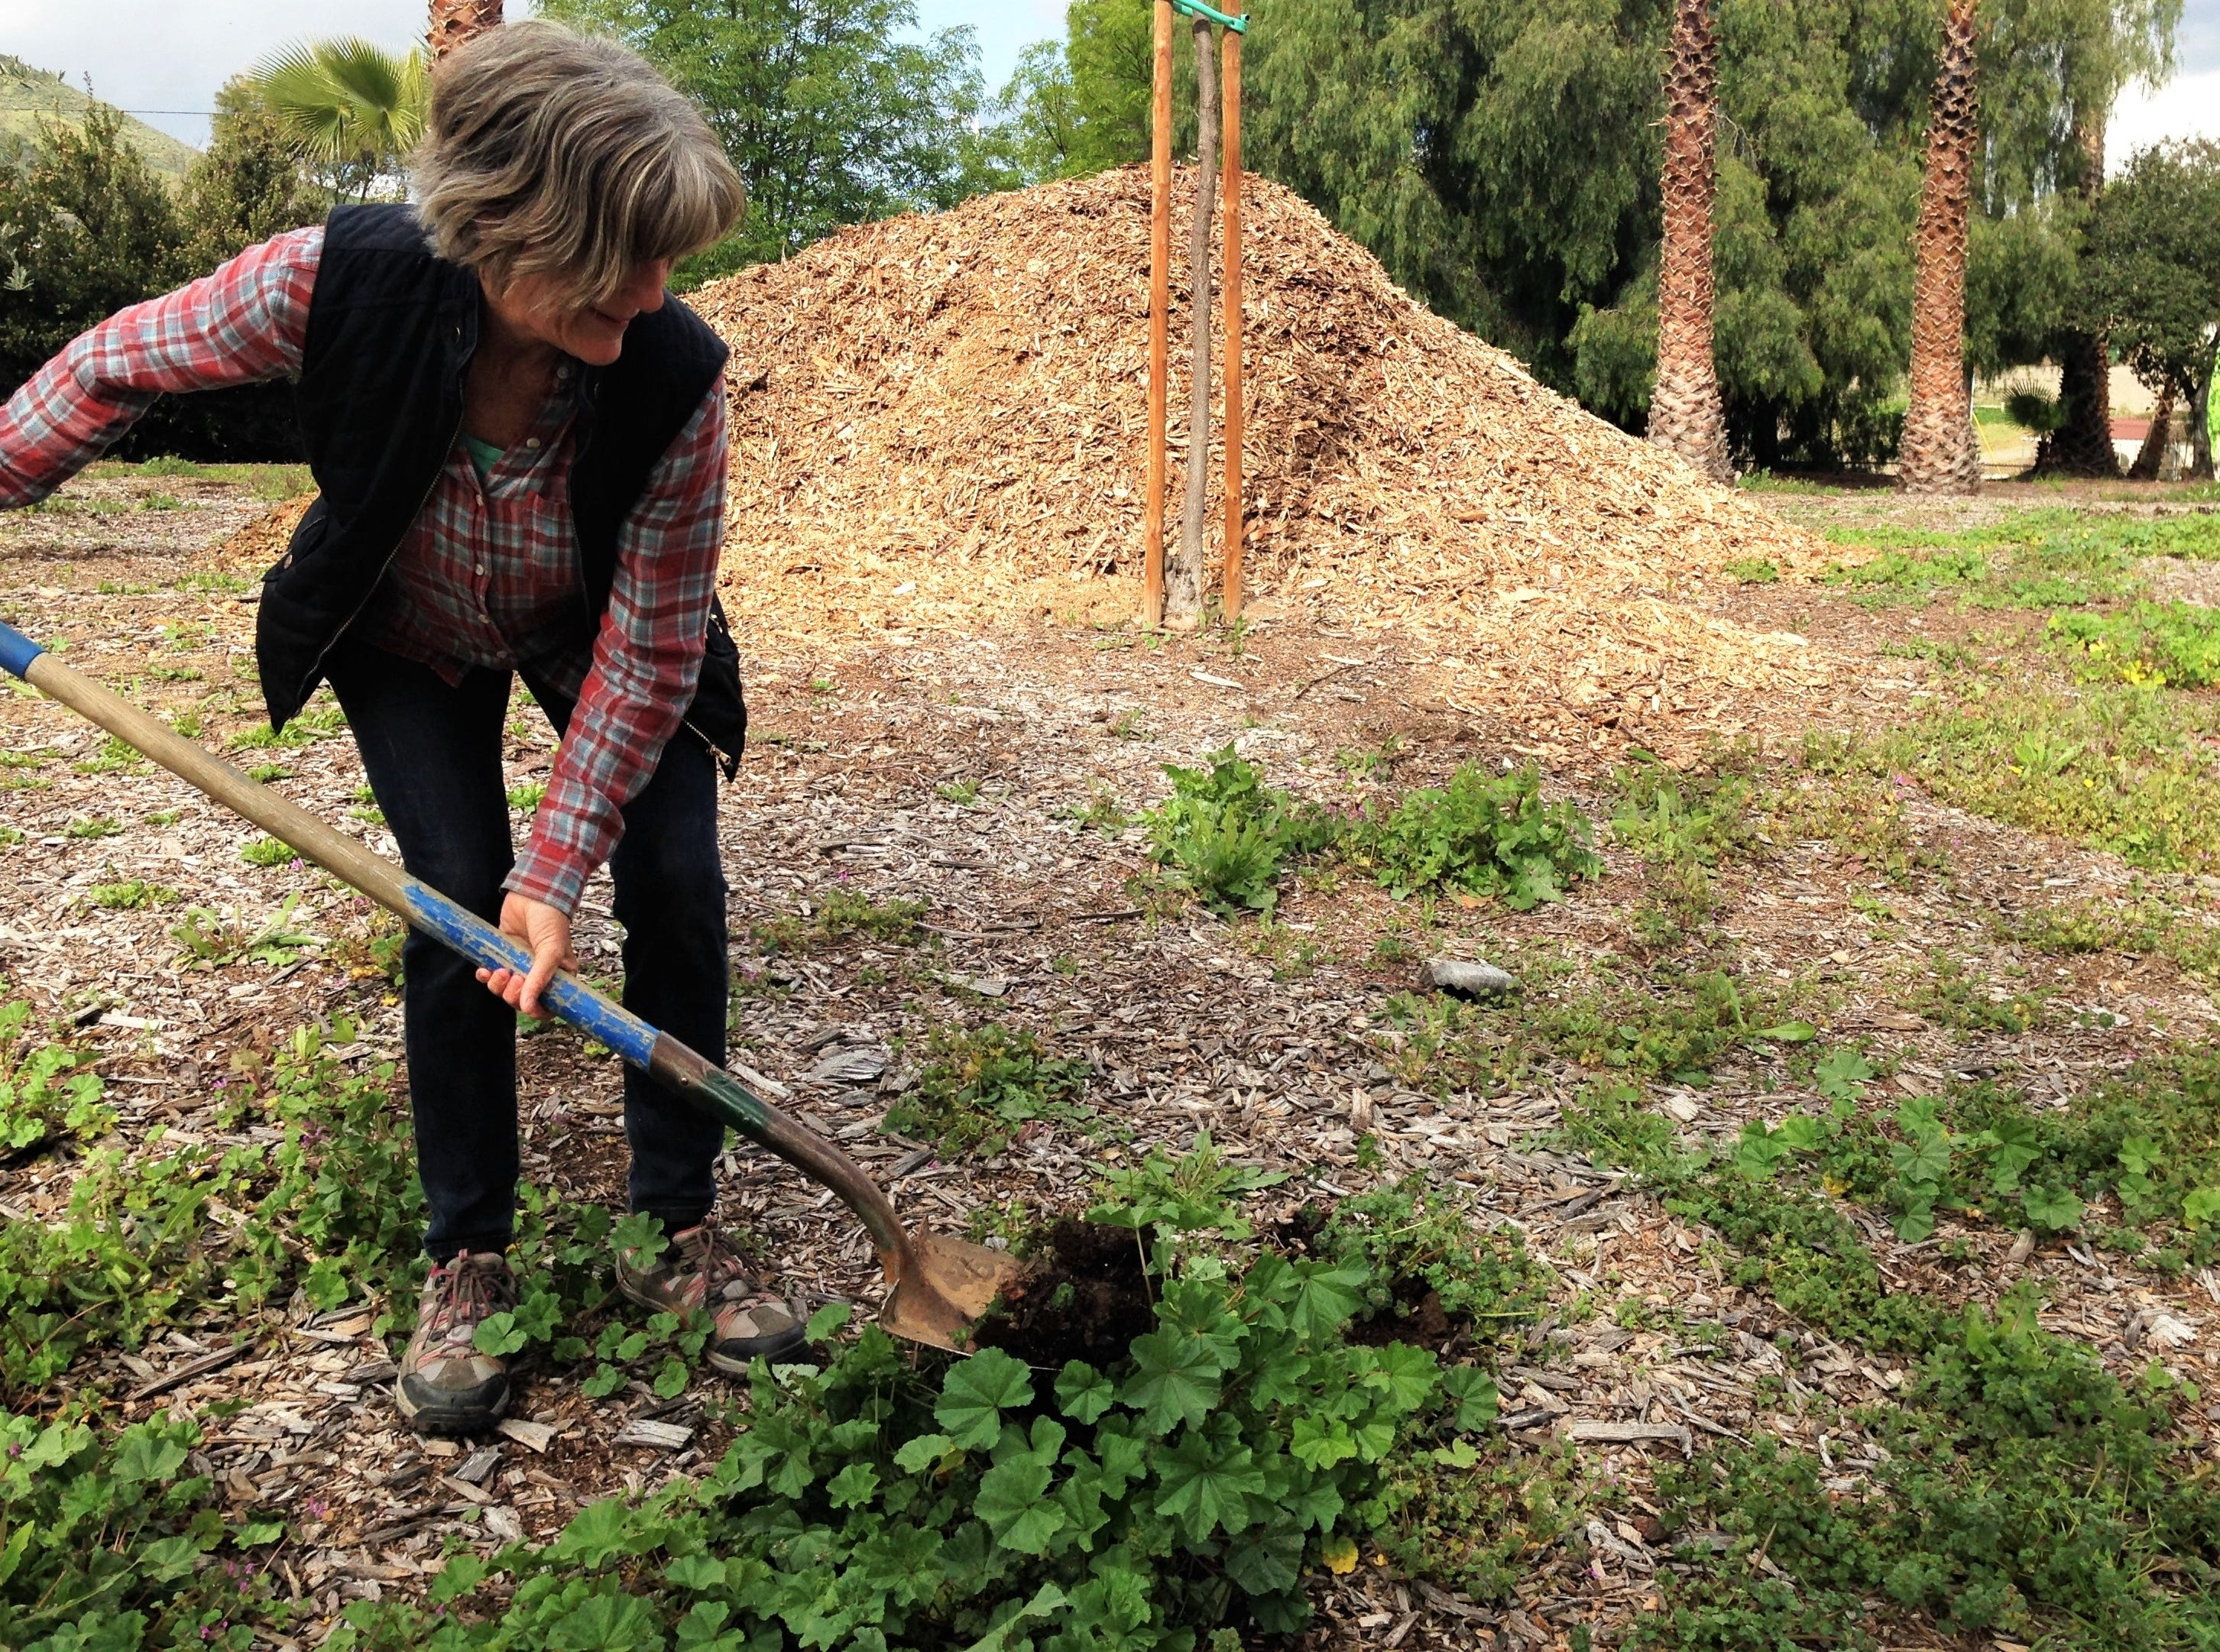 Caroline Carroll, of Simi Valley, was among numerous volunteers who shoveled away weeds from the front lawn of the Simi Valley Samaritan Center on Saturday during Community Volunteer Day.